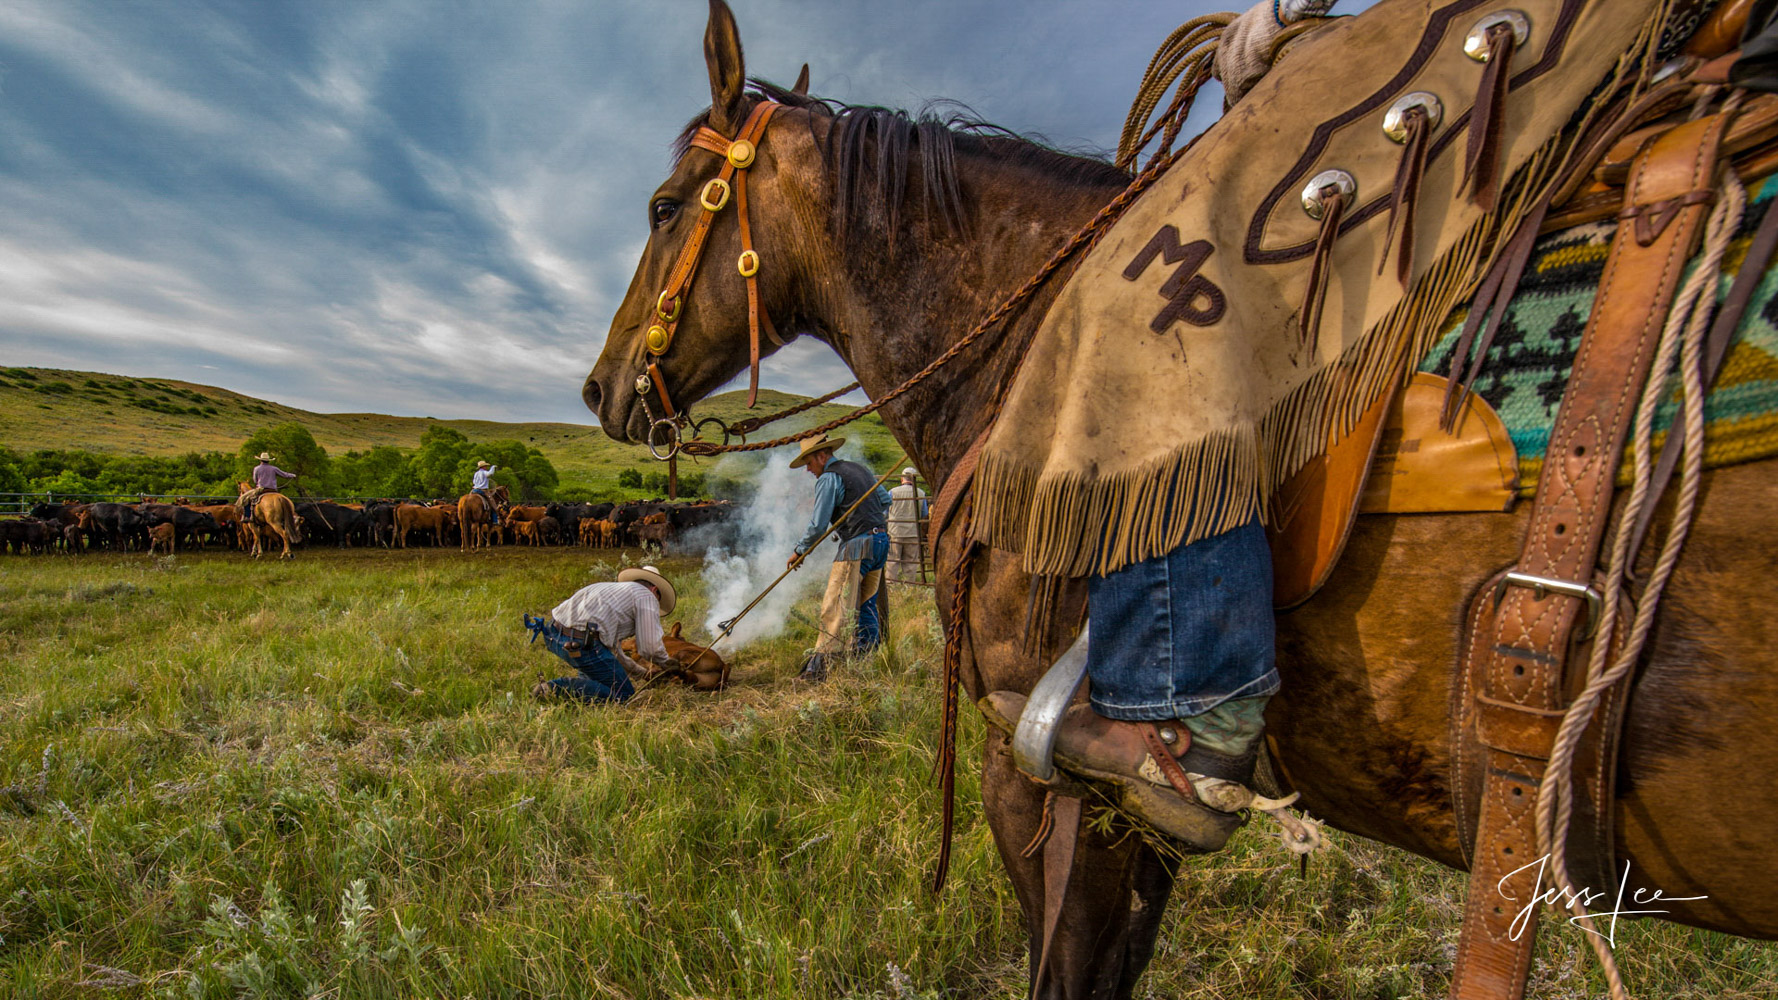 cowboy, western, Large format, cowgirl, ranch, museum, fine art, print, jess lee, artist, photographer, limited edition, high quality, high resolution, beautiful, artistic, , Peter Lik, stoecklein, kl, photo